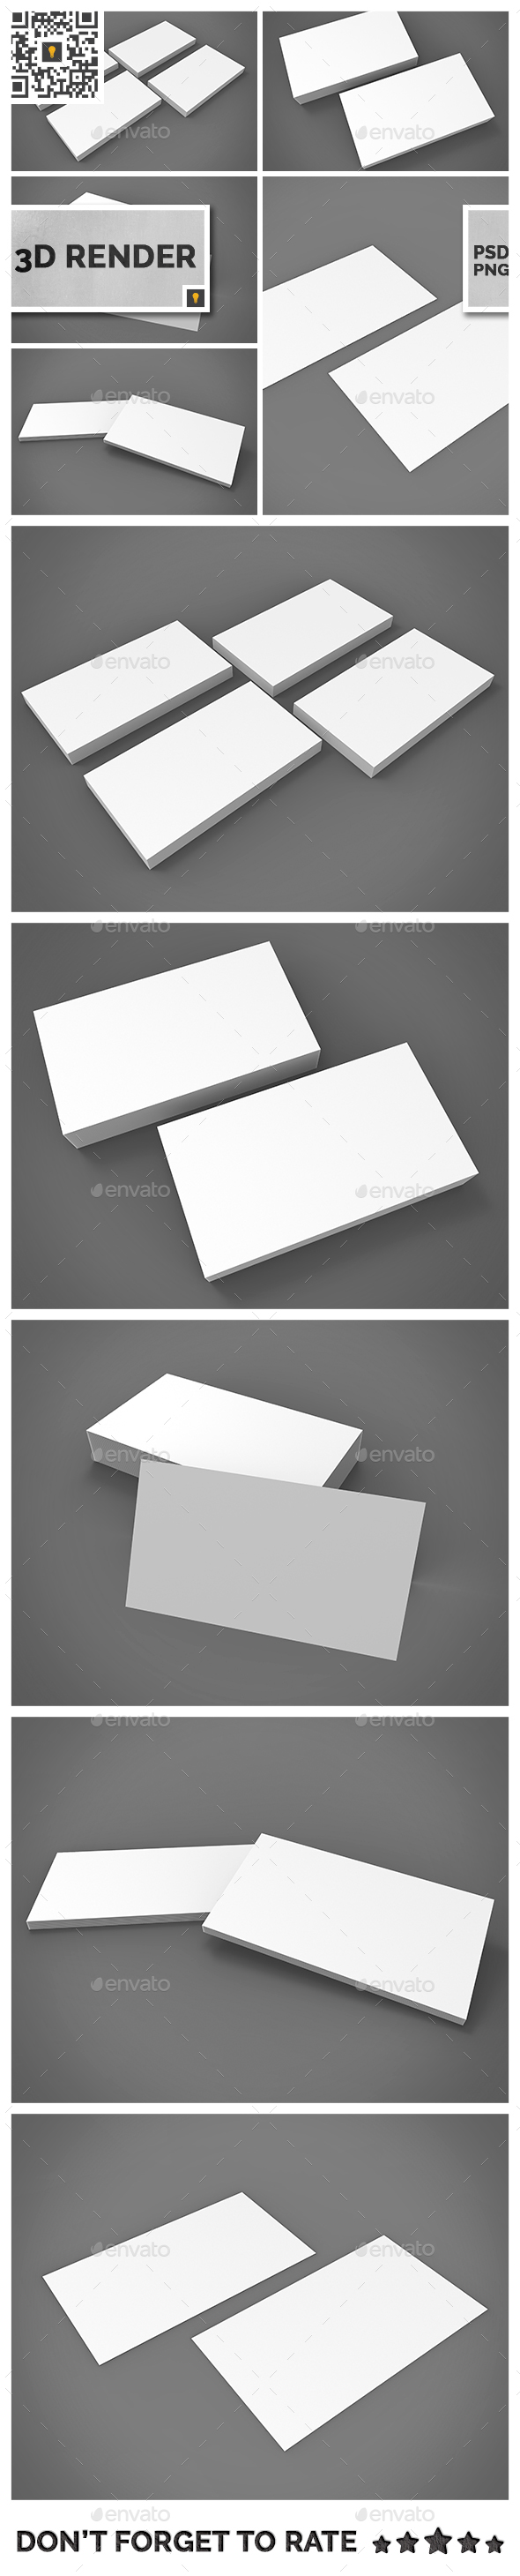 Business Card 3D Render - Miscellaneous 3D Renders